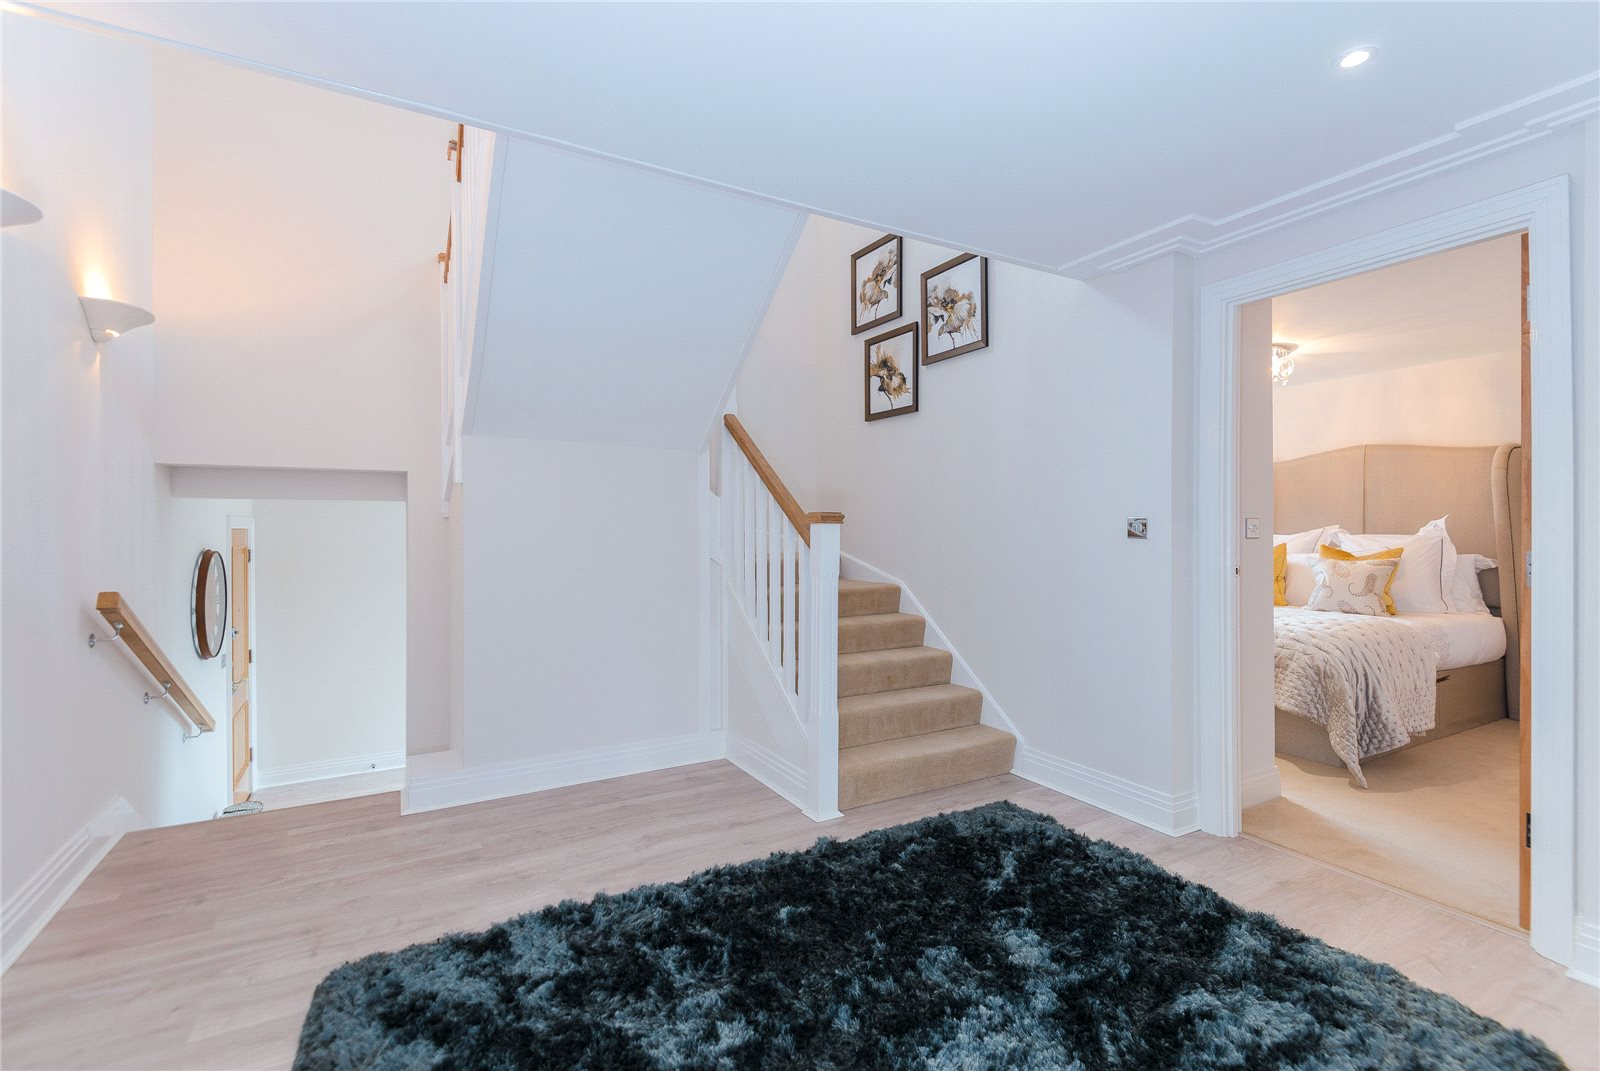 Additional photo for property listing at Scholars Place, South Park Drive, Gerrards Cross, Buckinghamshire, SL9 Gerrards Cross, Angleterre